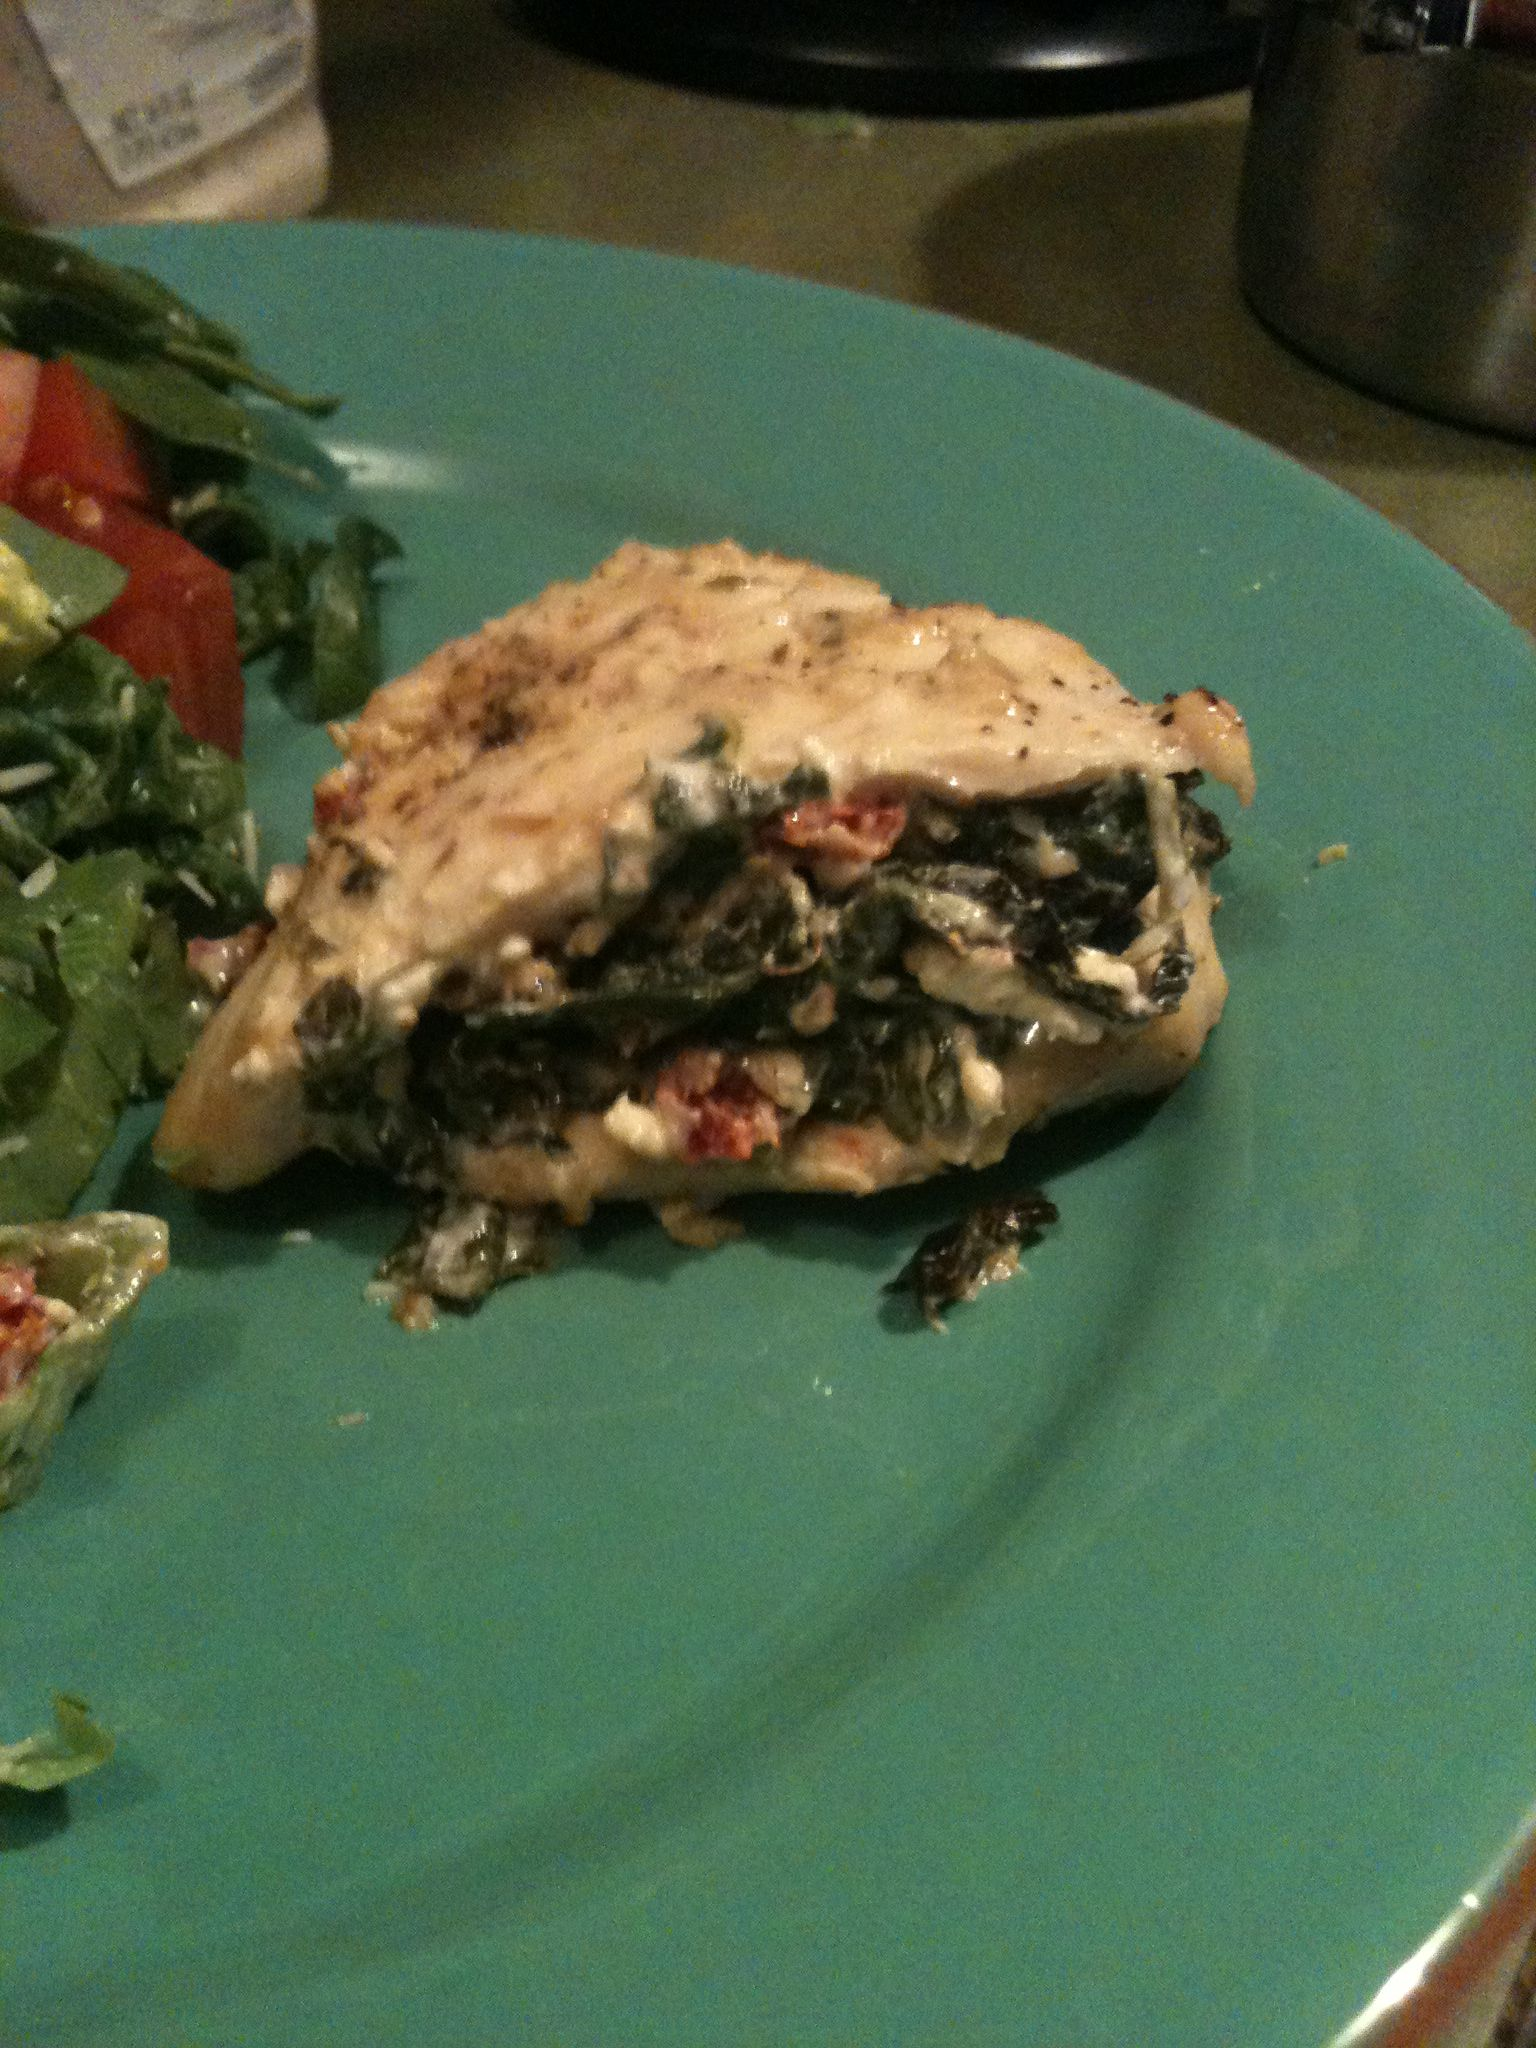 Feta and spinach stuffed chicken. Nick and I really love this recipe and make this at least once a month. We even stuffed the chicken and froze them stuffed before we cooked the chicken. This was we had plenty of if and only had to make it once   http://fitmindandbody.tumblr.com/post/5958150534/wannabefitnotfat-andiwillbehealthy